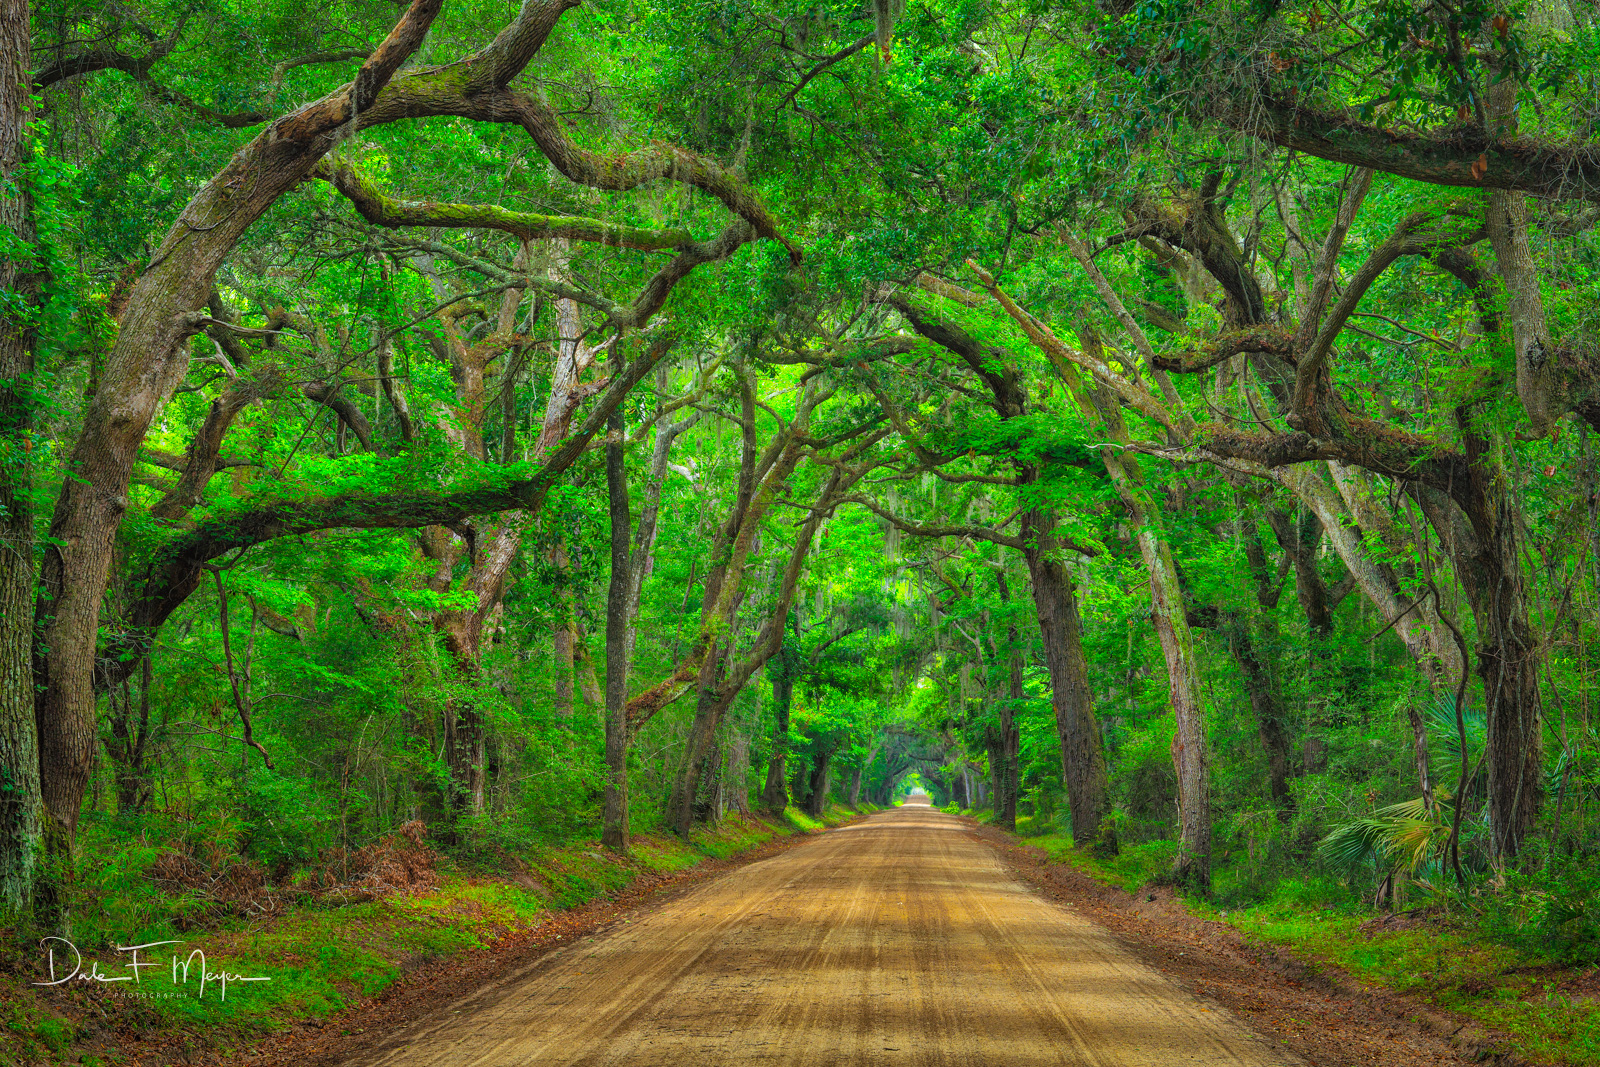 Botnay Bay Rd, Coastal Photos of the Eastren Seabord Gallery, Dirt Road, Edisto Island, Live Oaks, photo